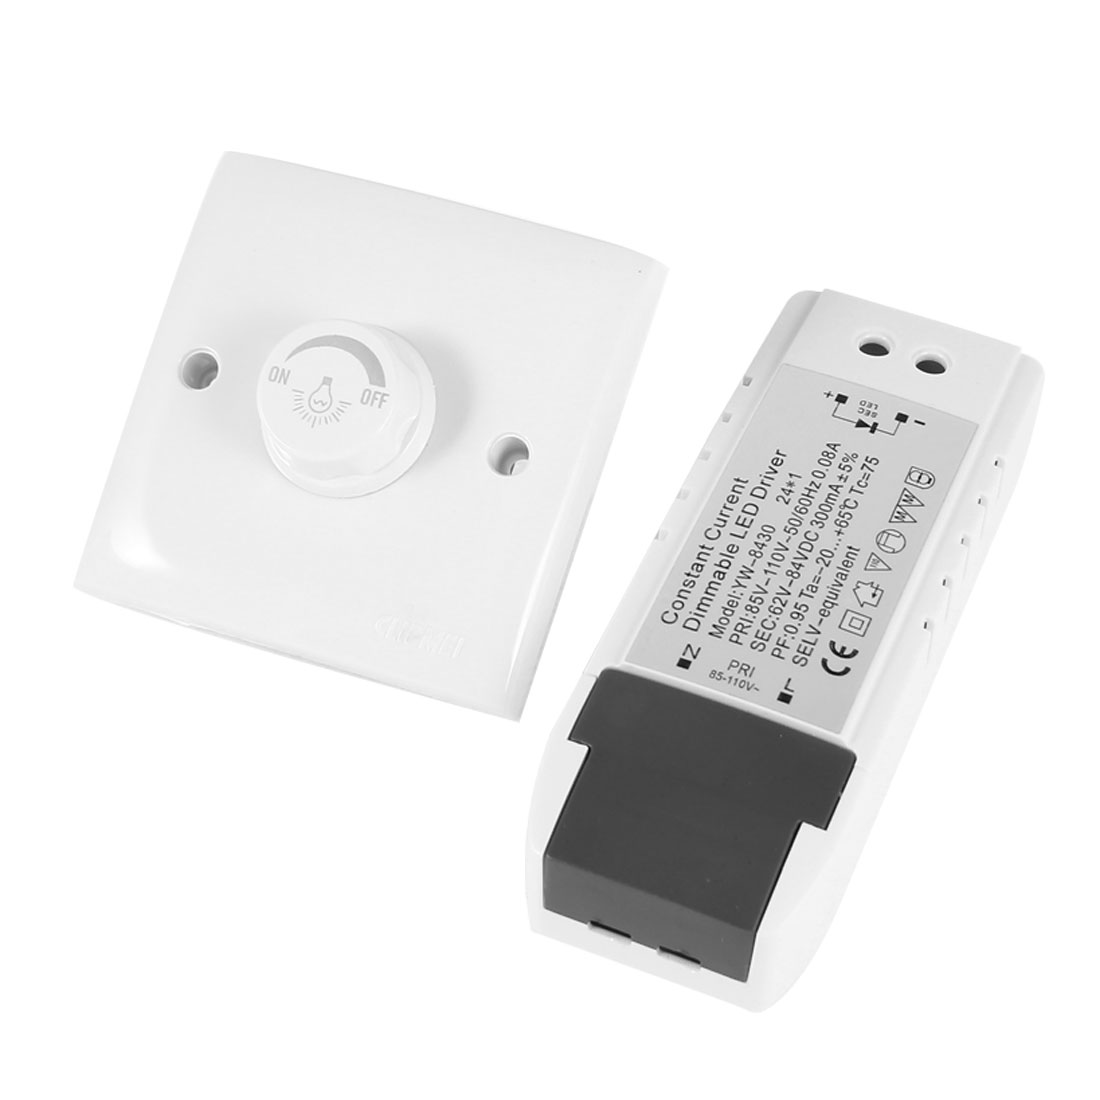 AC 200-250V White Wall Plate LED Lamp Light Dimmer Control Switch w 62-84V 300mA Driver